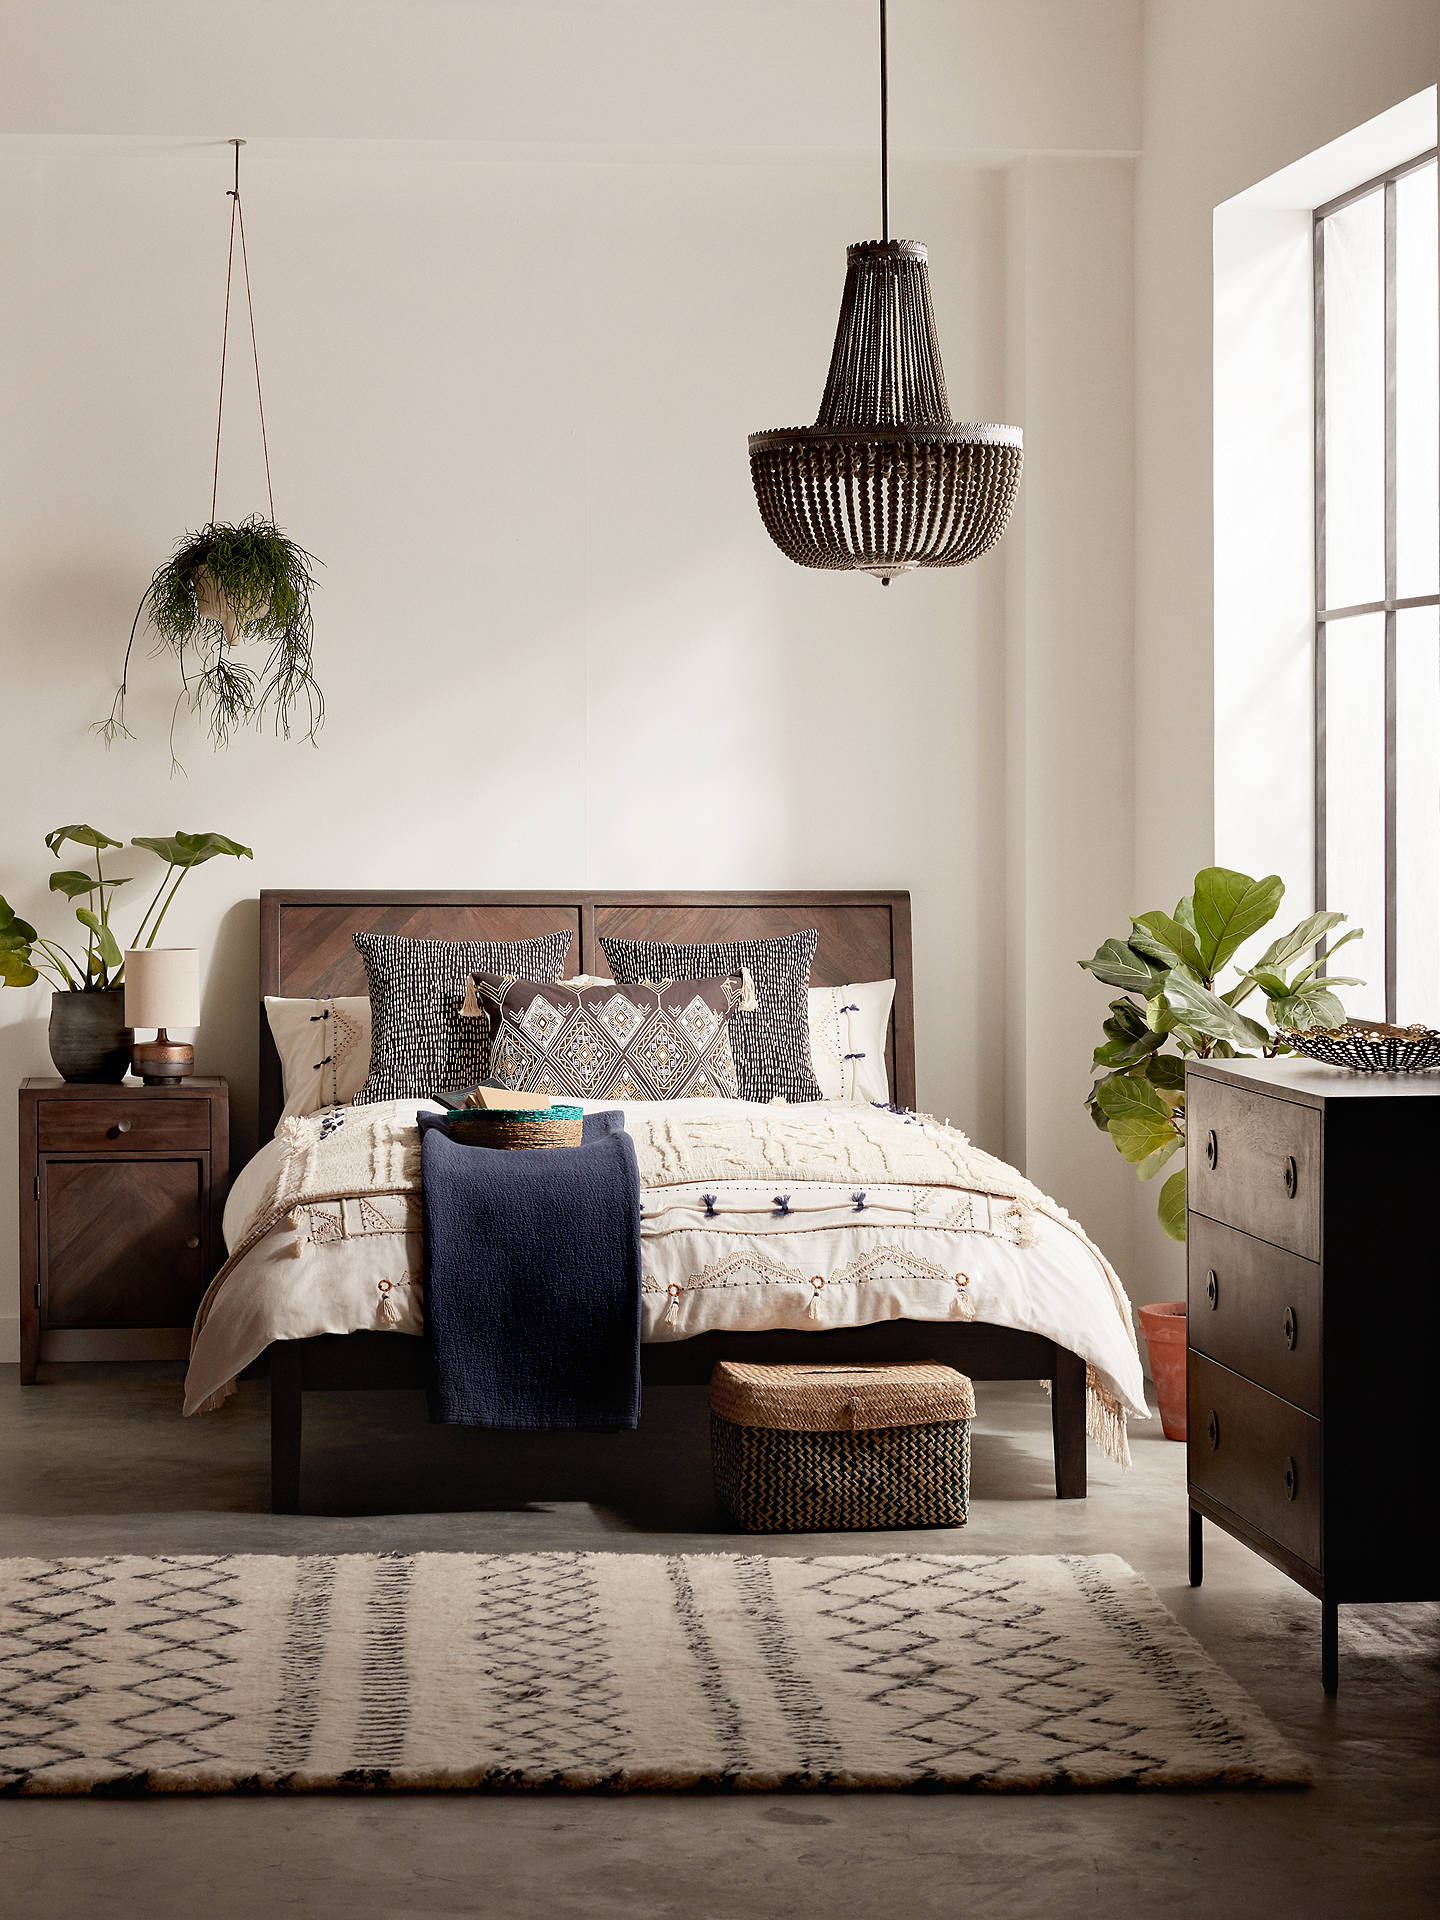 Buy John Lewis & Partners Padma Parquet Bed Frame, Double, Grey Online at johnlewis.com